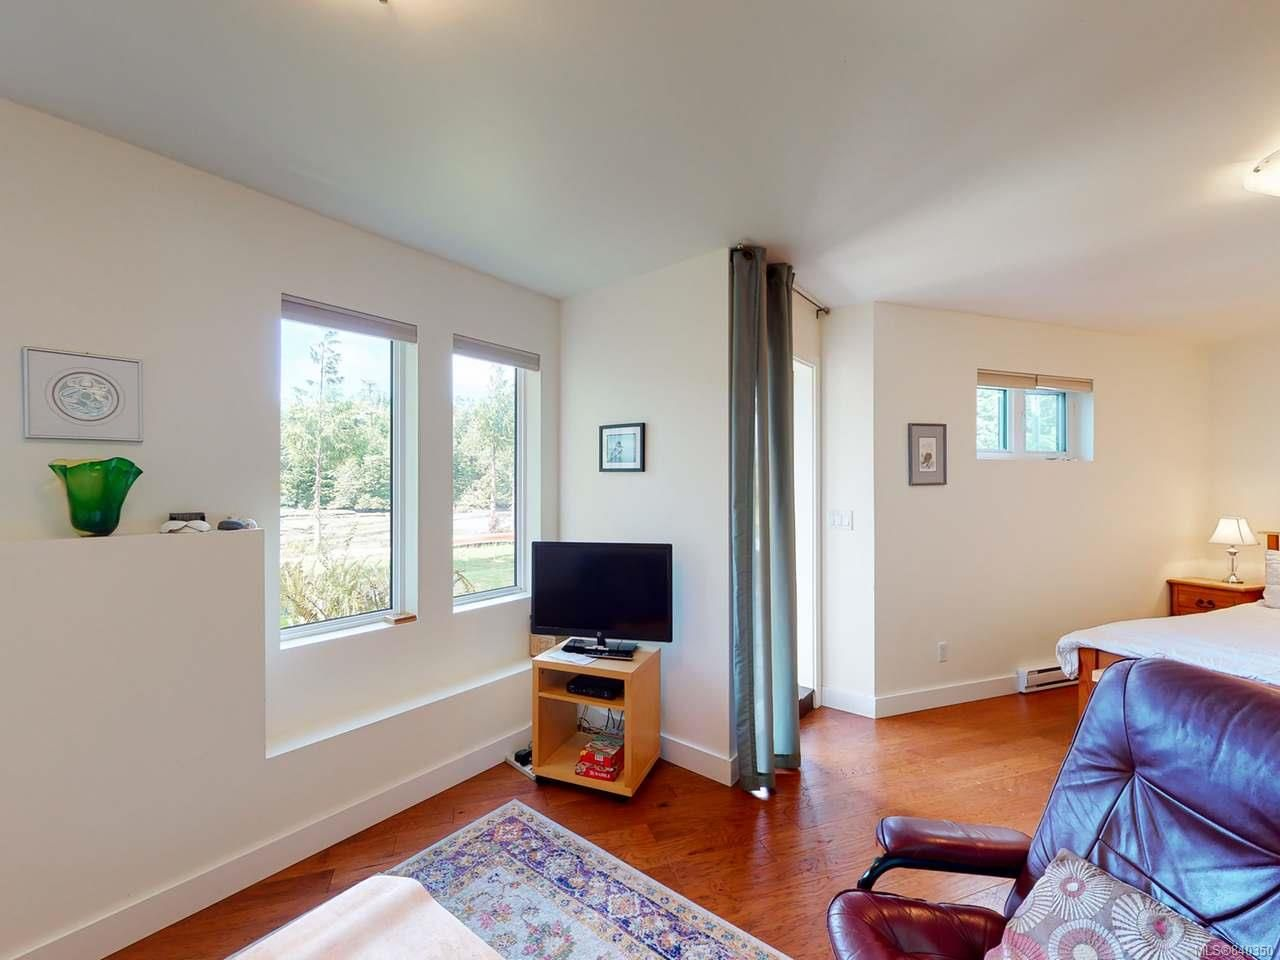 Photo 47: Photos: 1068 Helen Rd in UCLUELET: PA Ucluelet House for sale (Port Alberni)  : MLS®# 840350